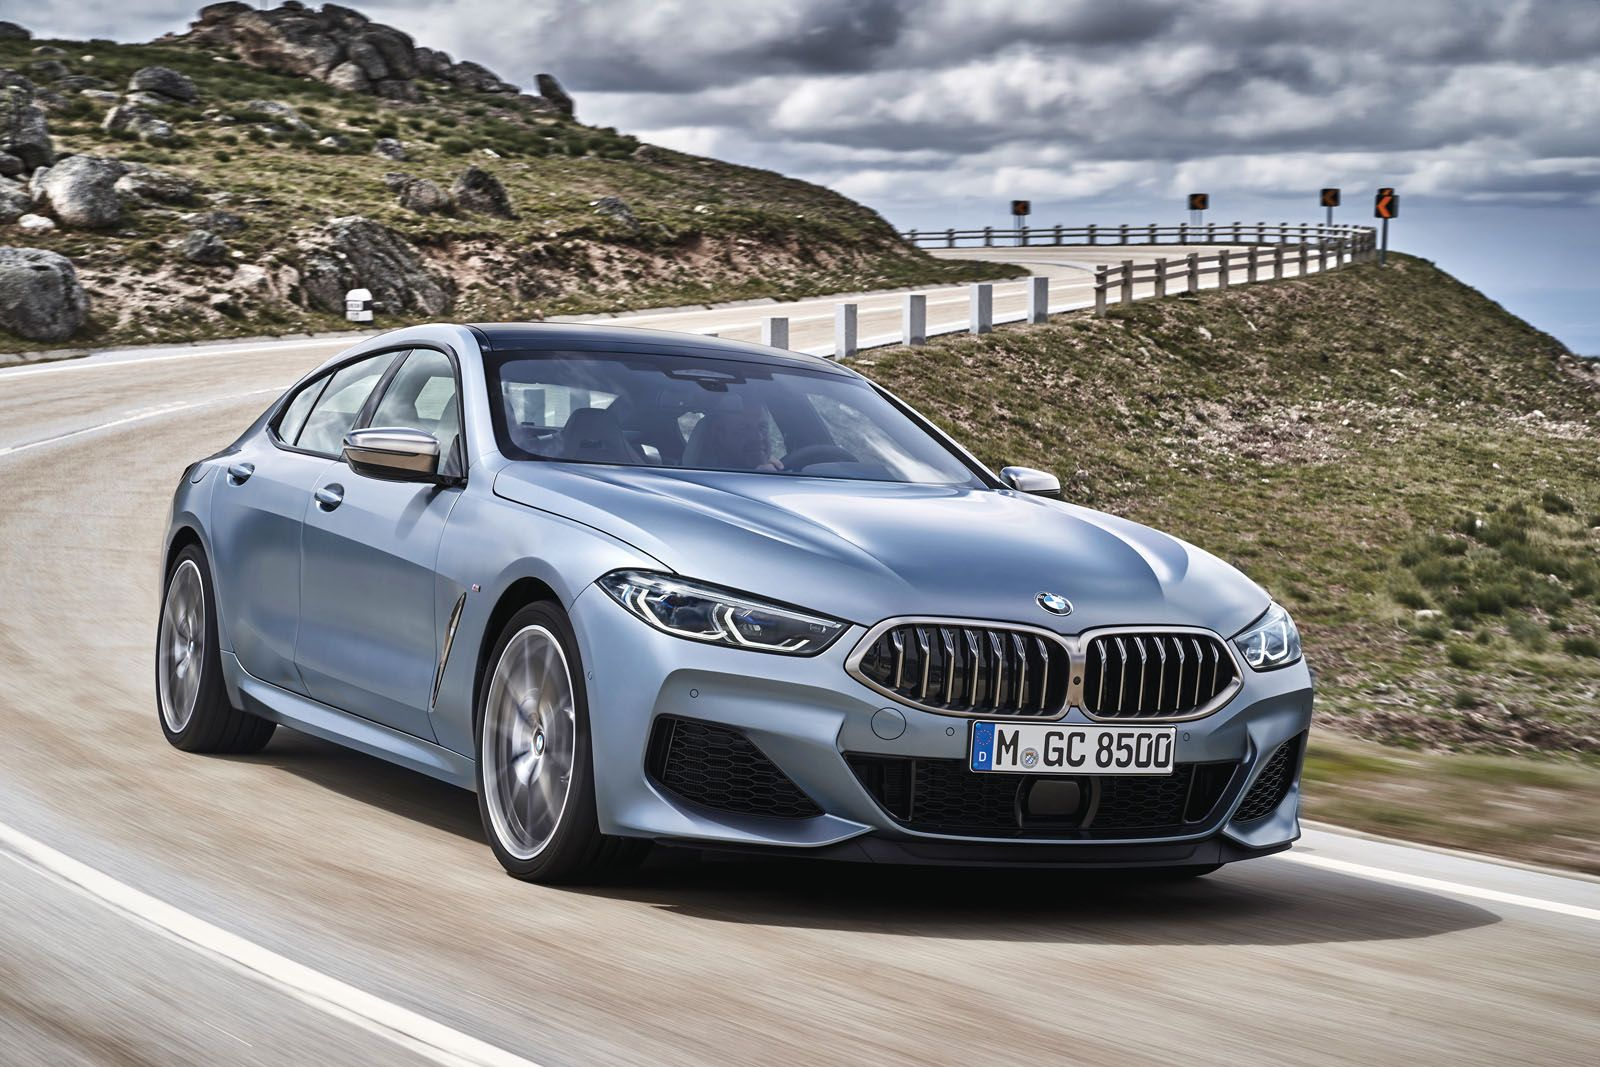 After a 20-year hiatus, the 8 Series returns to BMW's fleet with three new grand touring variants available in Singapore, including the four-door M850i xDrive Gran Coupe